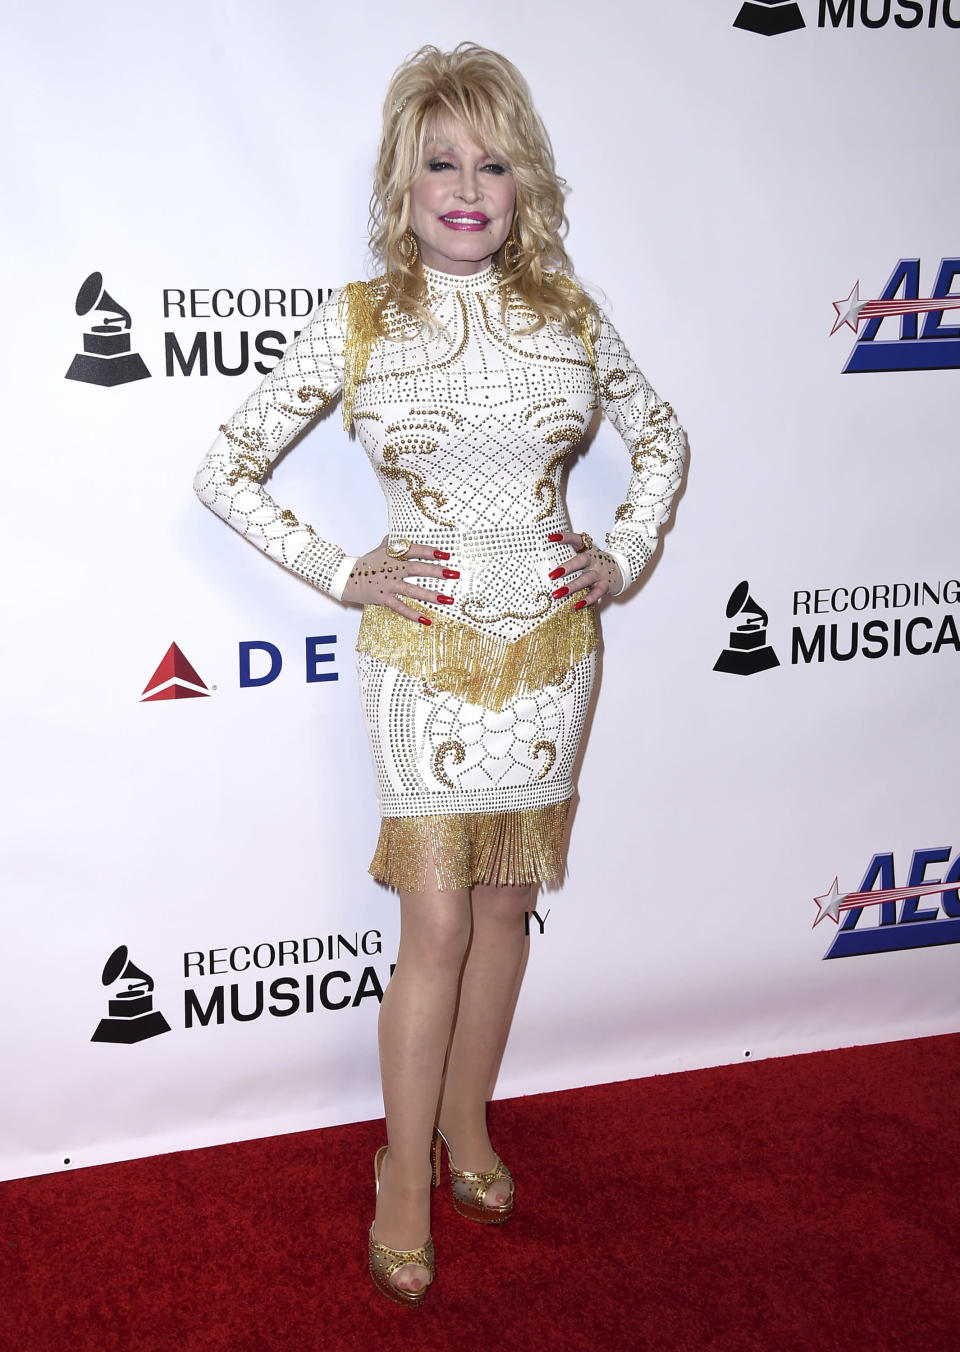 FILE - In this Feb. 8, 2019 file photo, Dolly Parton arrives at MusiCares Person of the Year in her honor at the Los Angeles Convention Center. The white and gold long sleeve dress worn by Parton is among a collection of items that will be sold to benefit the Recording Academy's MusiCares, which helps provide health and other safety net assistance for those who need it in the music industry. The sale, hosted by Julien's Auctions, will be held Jan. 30, 2022, during the runup to the Grammys. (Photo by Jordan Strauss/Invision/AP, File)